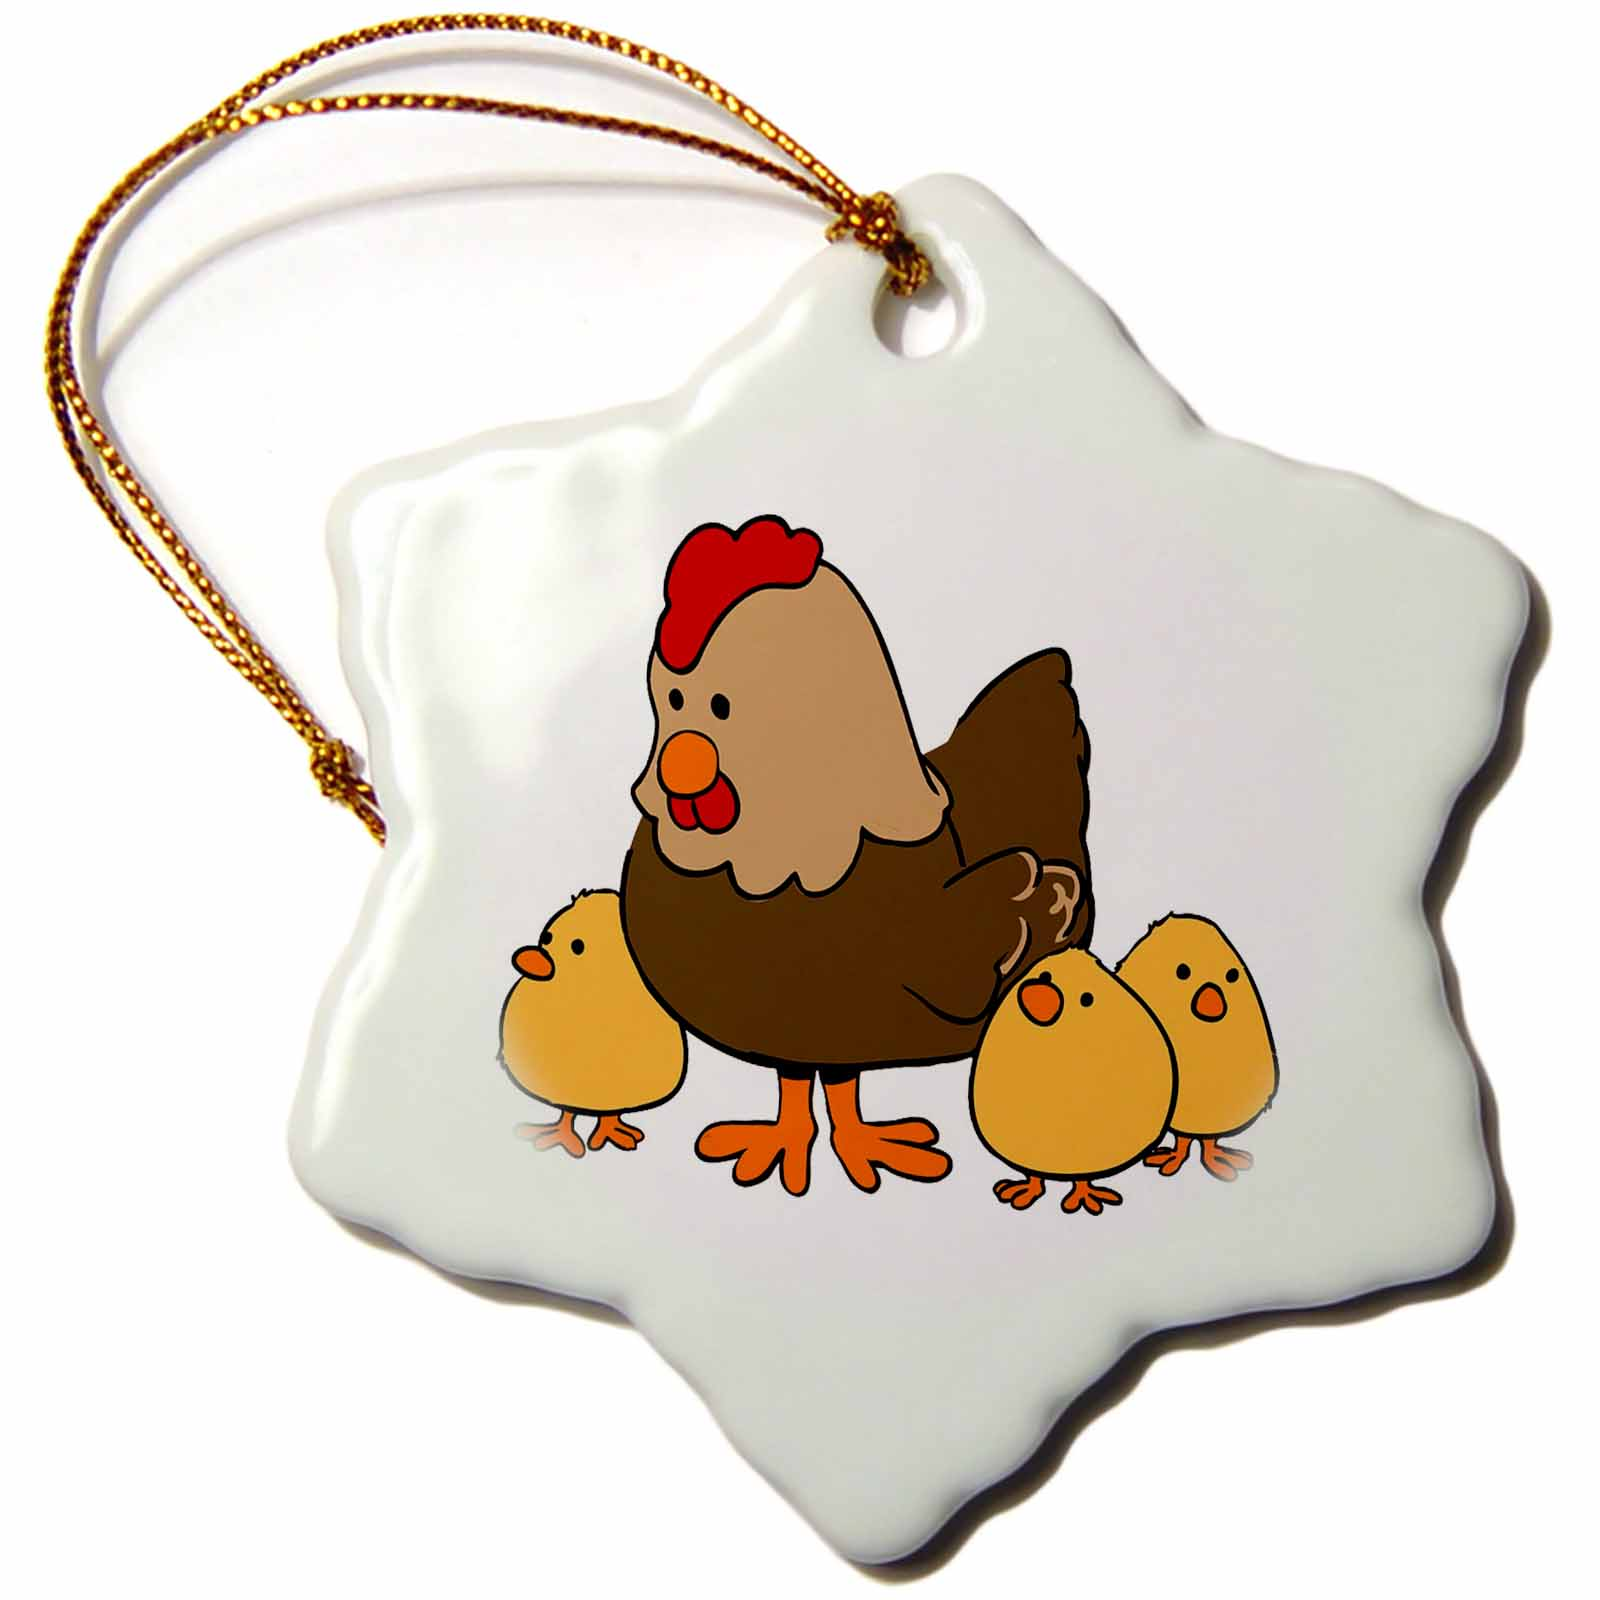 3dRose image of mama chicken with 3 baby chicks, Snowflake Ornament, Porcelain, 3-inch